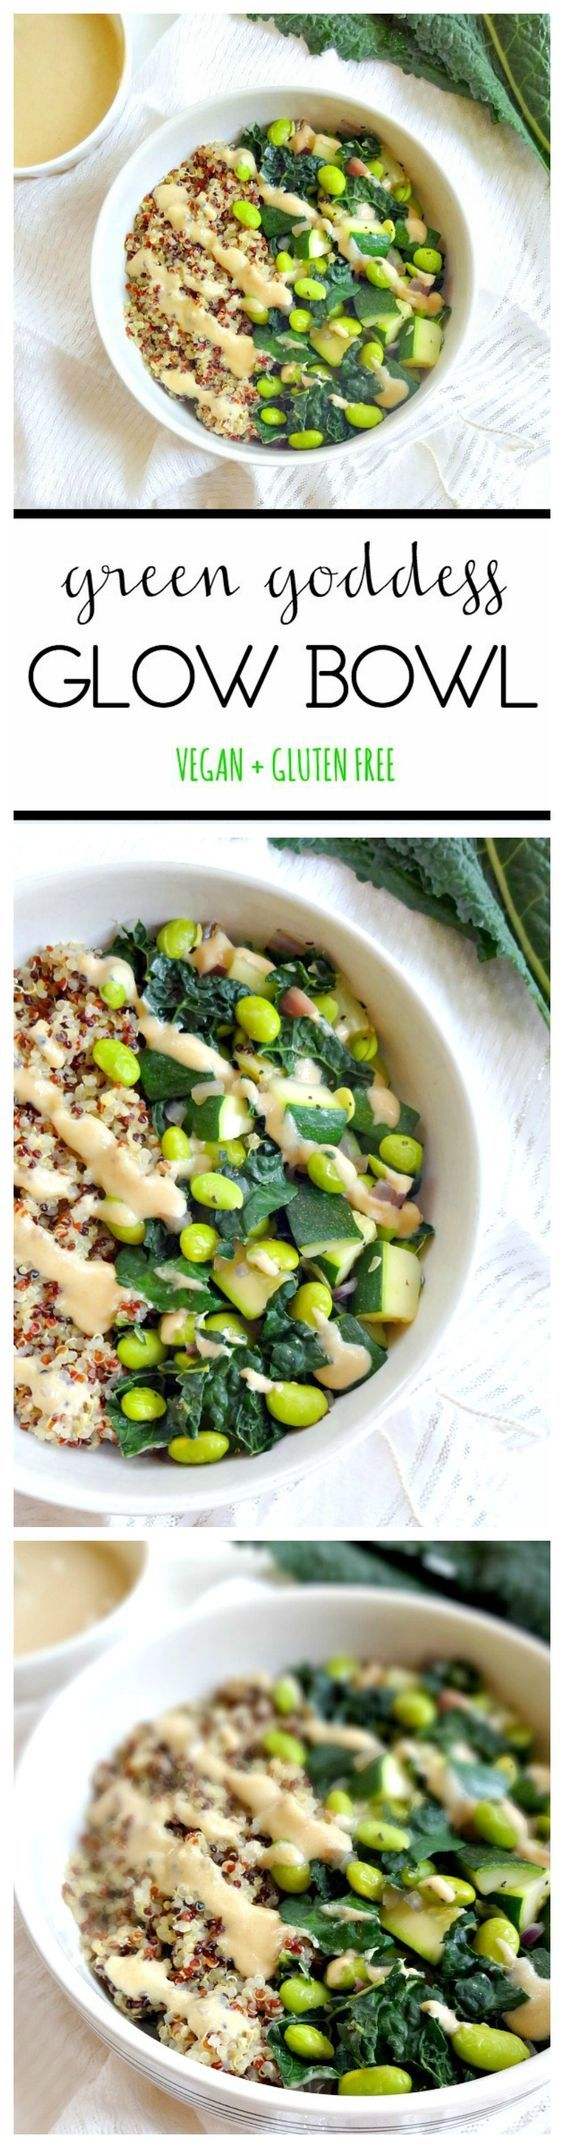 The 'Green Goddess Glow Bowl' ?? ready in 20 minutes! vegan   gluten free  a protein packed healthy recipe with a savory tahini lemon dressing. lean  clean and green! from The Glowing Fridge